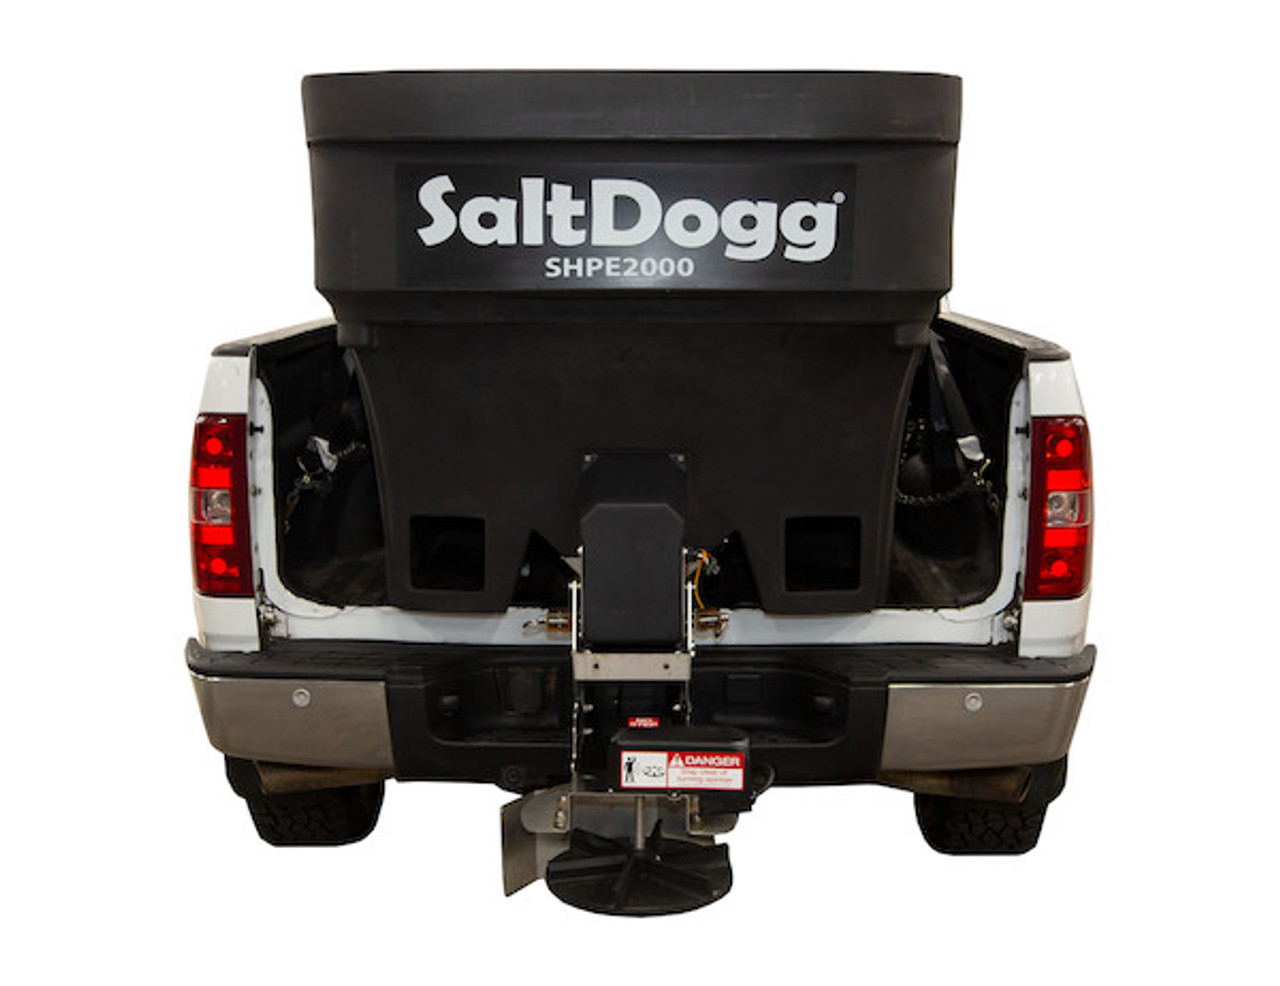 SHPE2000X BUYERS SALTDOGG ELECTRIC POLY HOPPER SPREADER